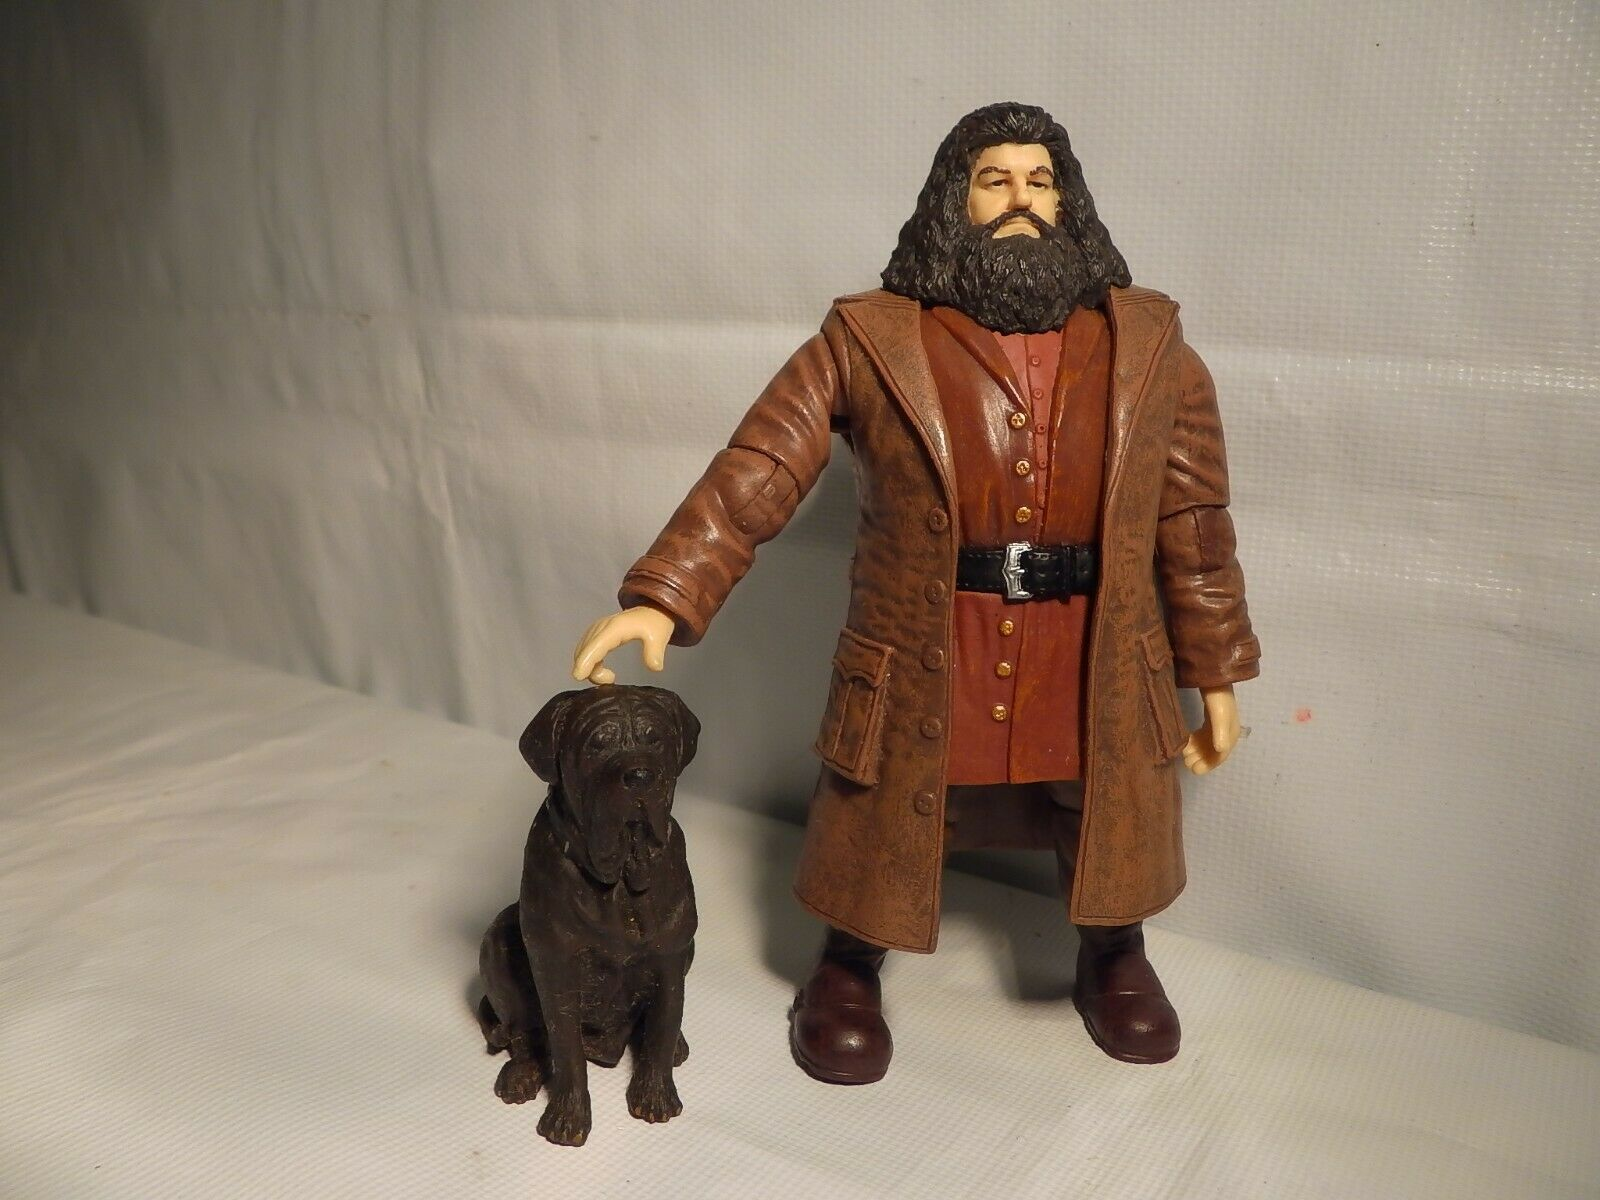 Rubeus Hagrid Fang the Dog Action Figure Harry Potter Order of the Phoenix Toy